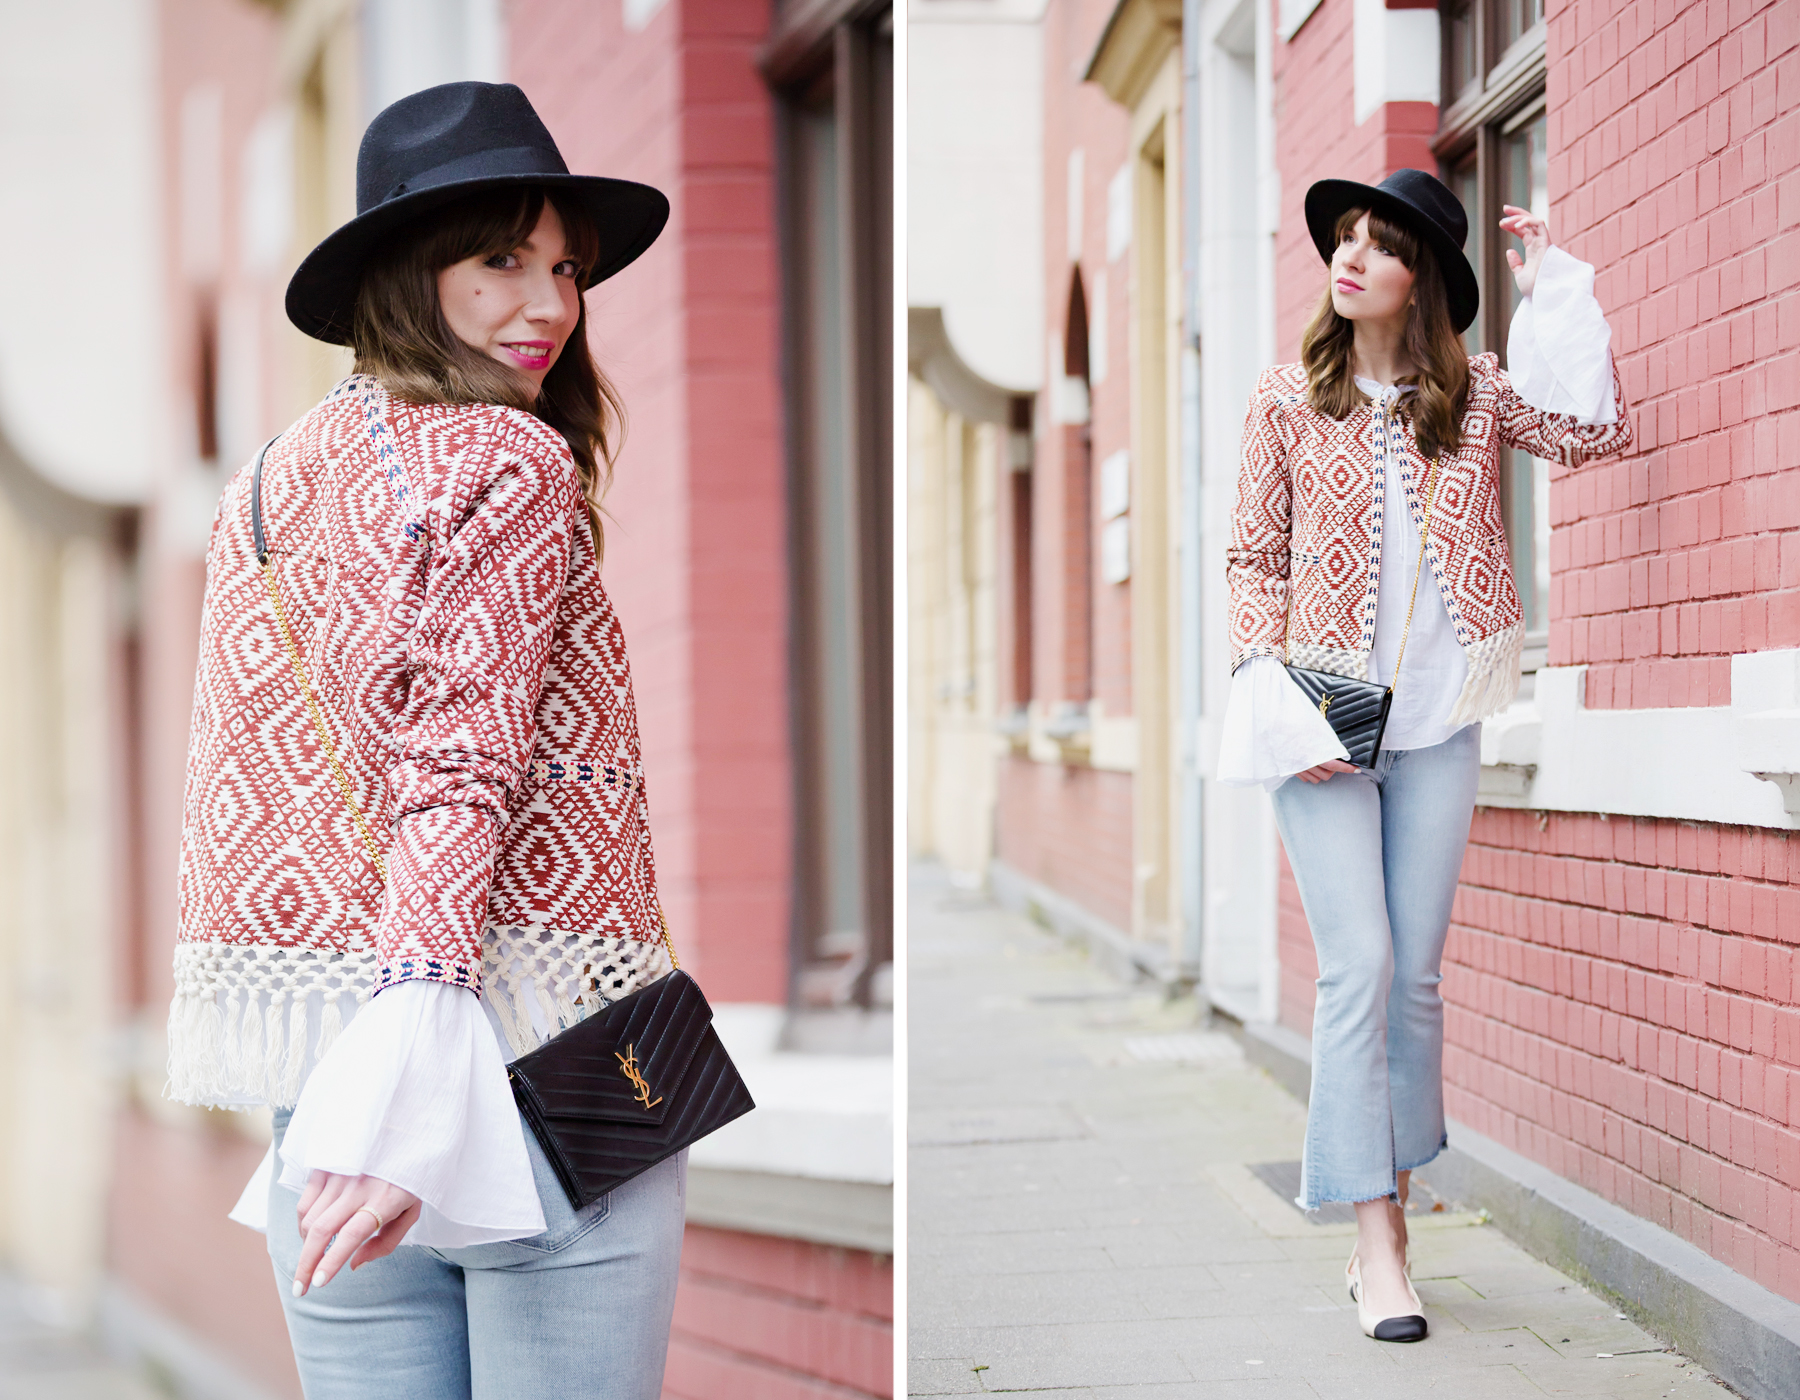 ootd outfit styling lookbook red hippie boho jacket shopbop saint laurent paris ysl bag flared jeans chanel slingback festival style cool girl bangs parisienne fashionblogger cats & dogs ricarda schernus blog 1